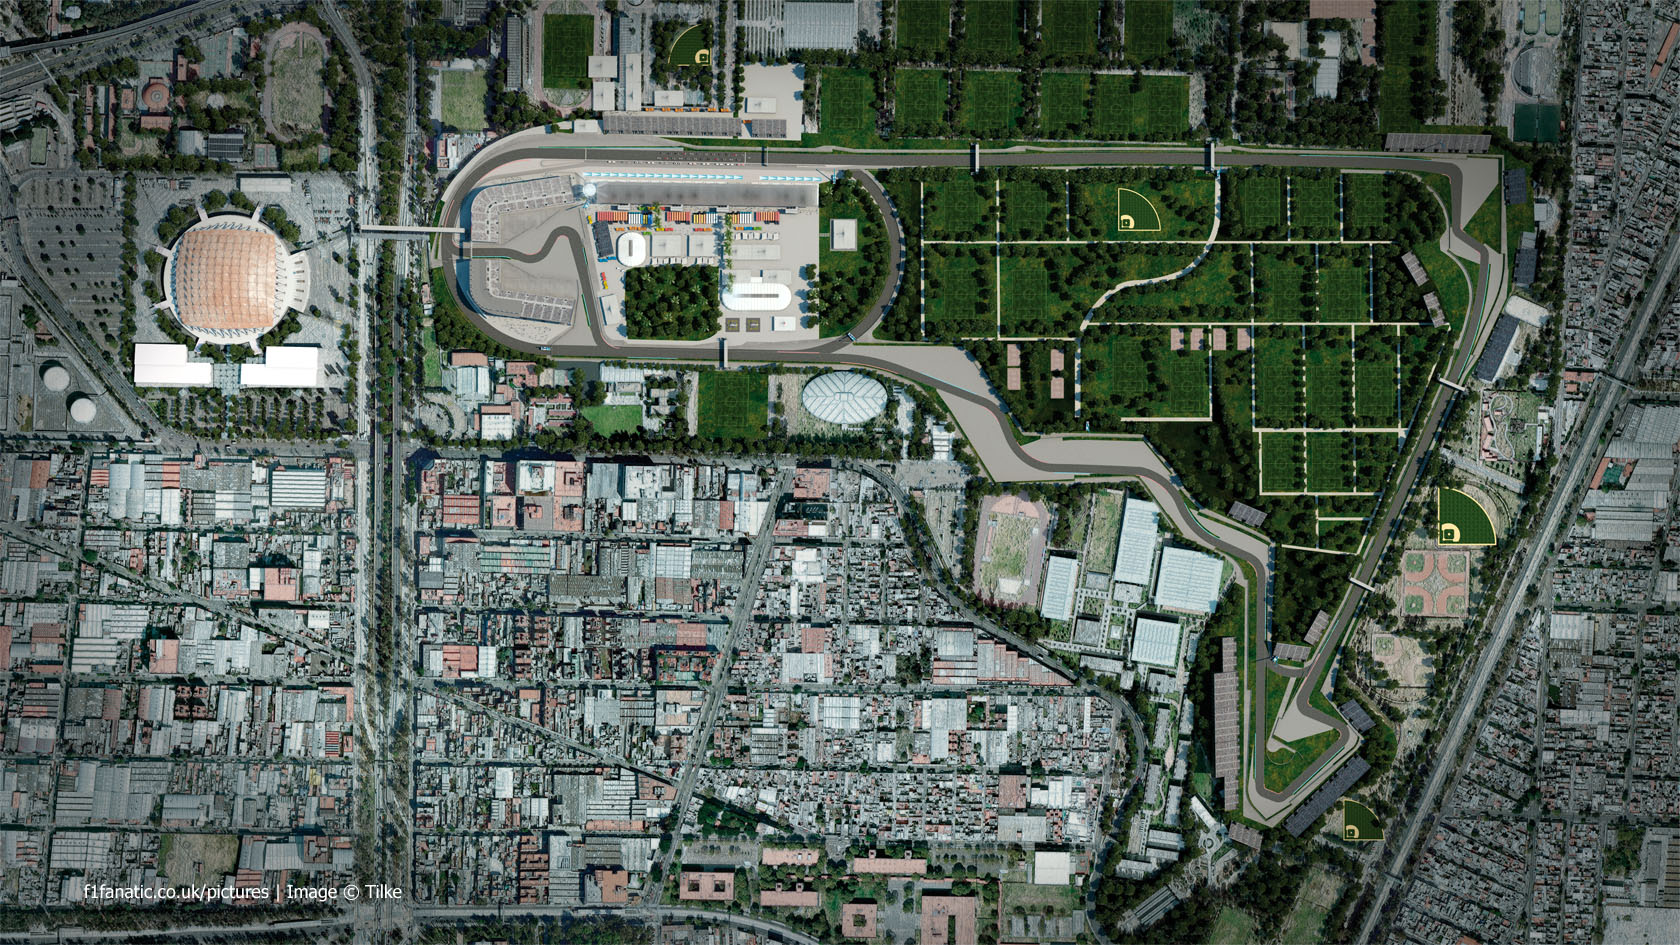 Drs zones on first two straights in mexico f1 fanatic for Puerta 2 autodromo hermanos rodriguez